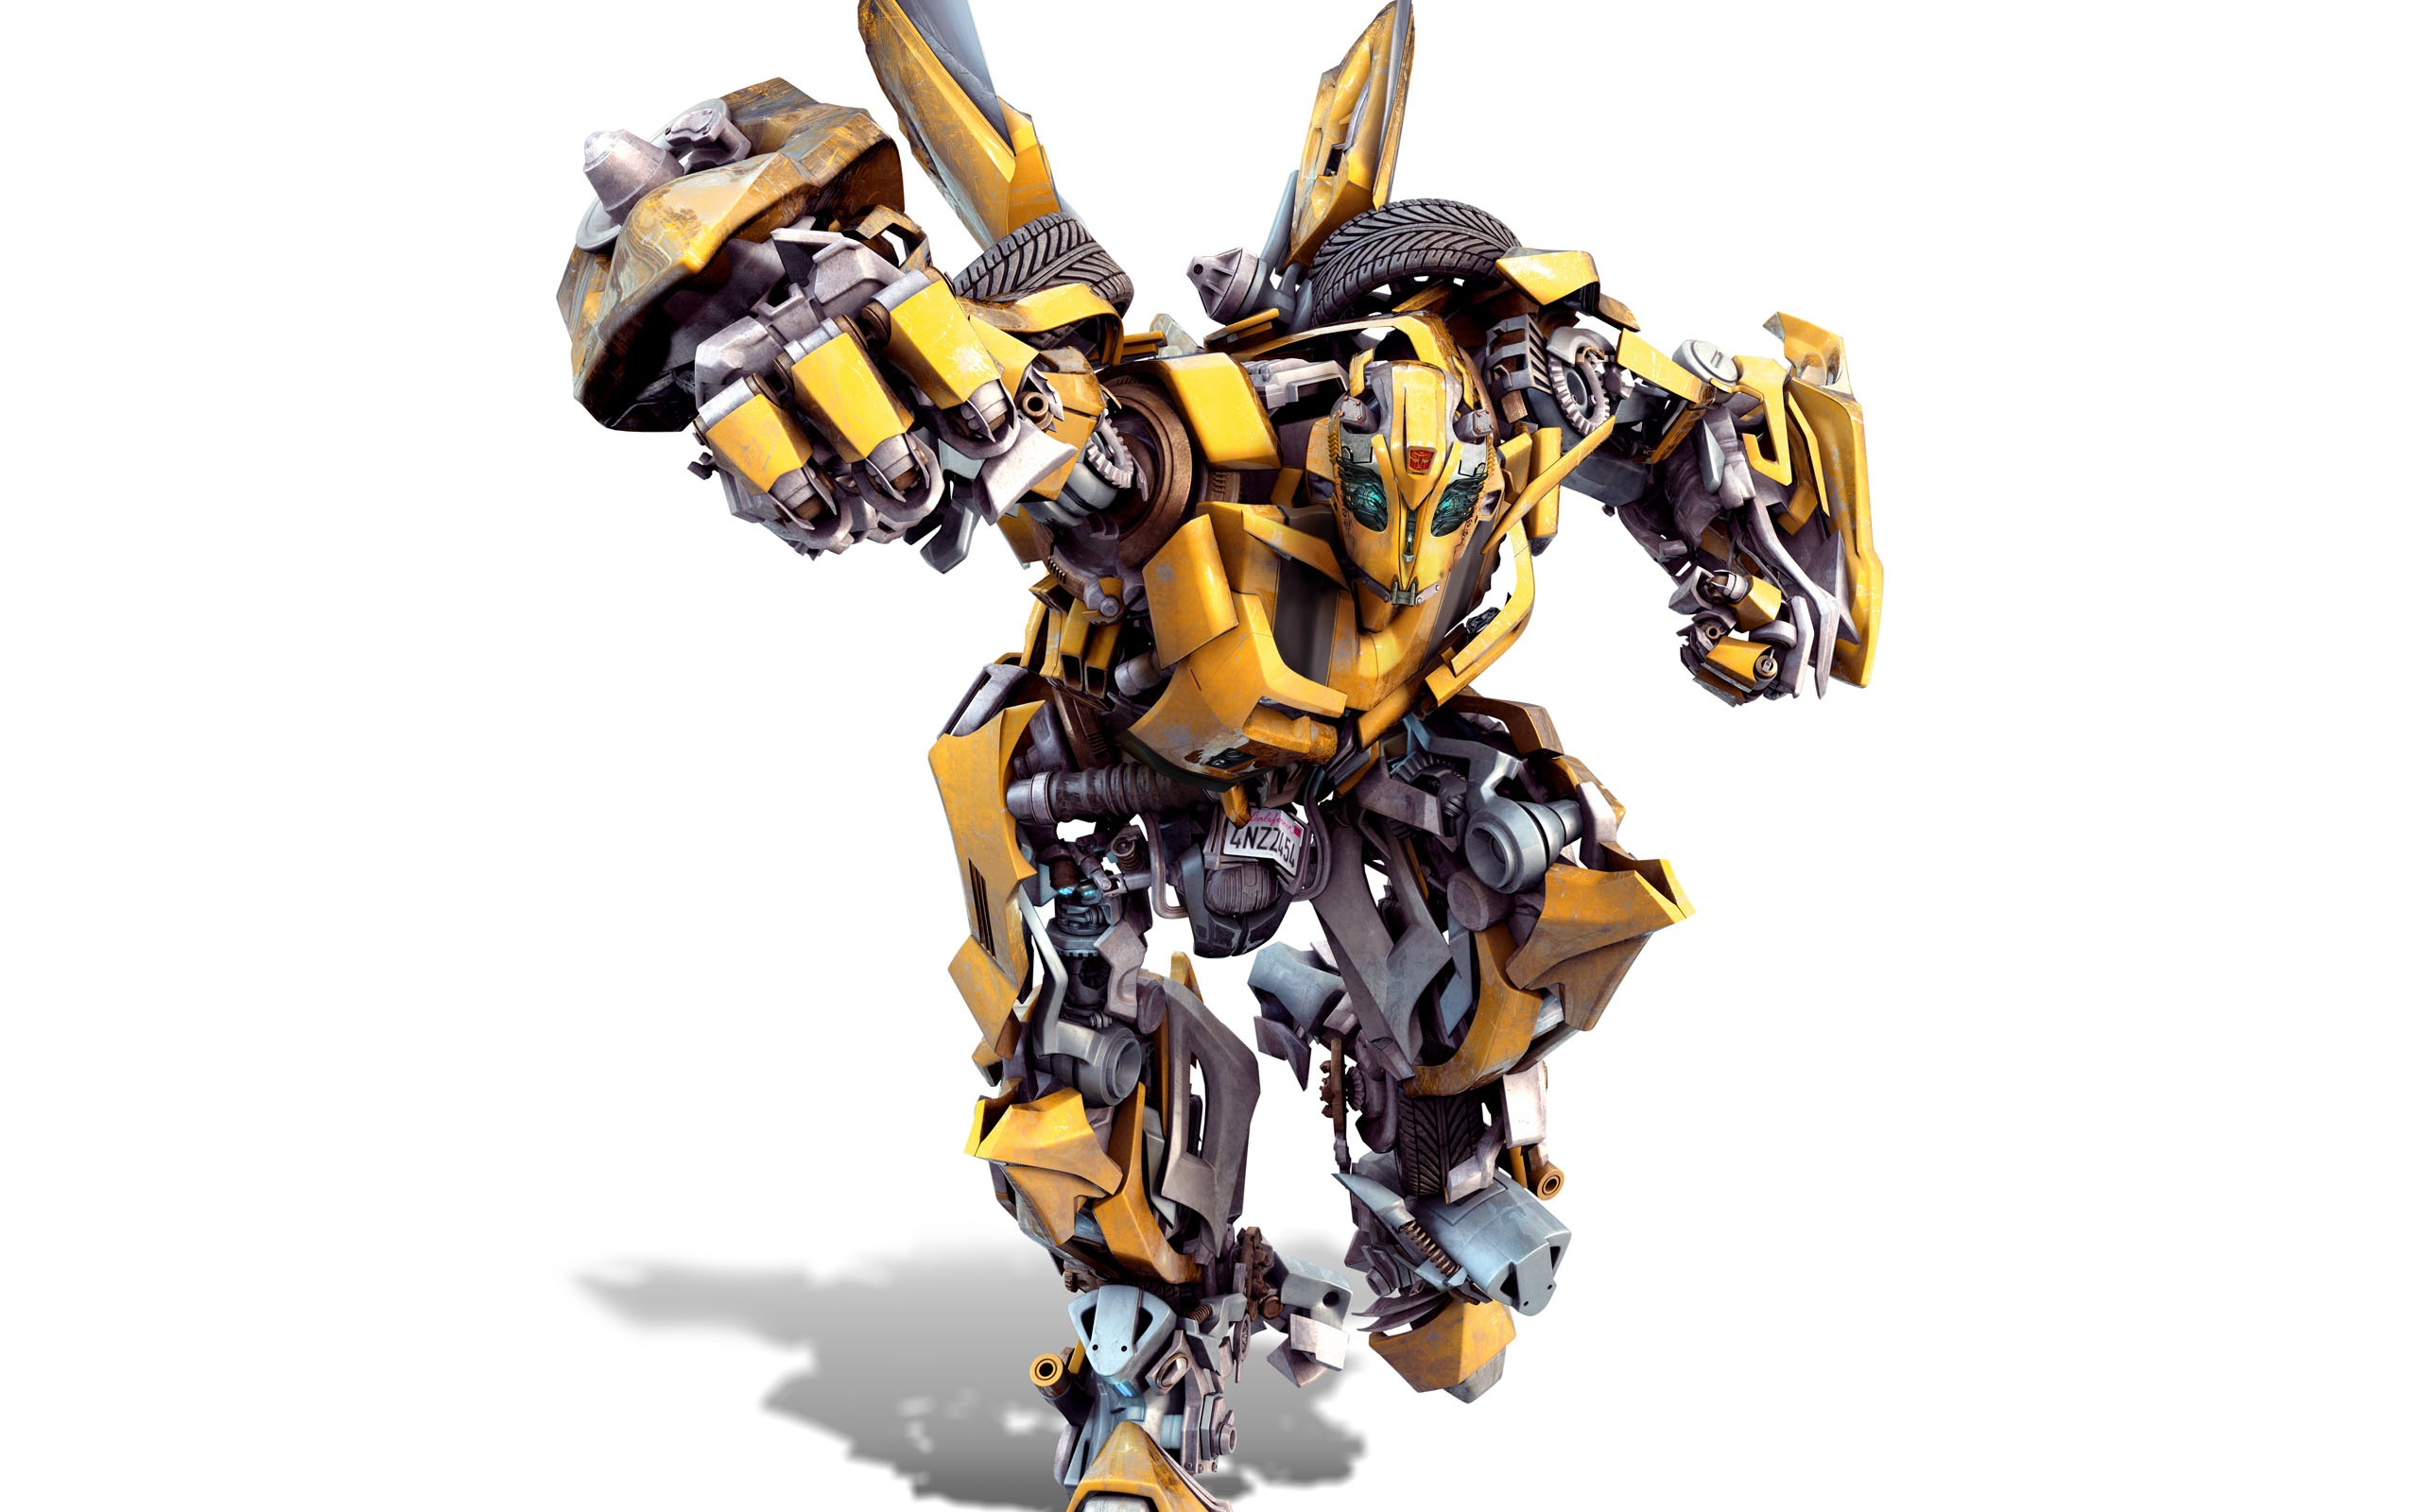 48 Bumblebee Transformers Hd Wallpapers Background Images